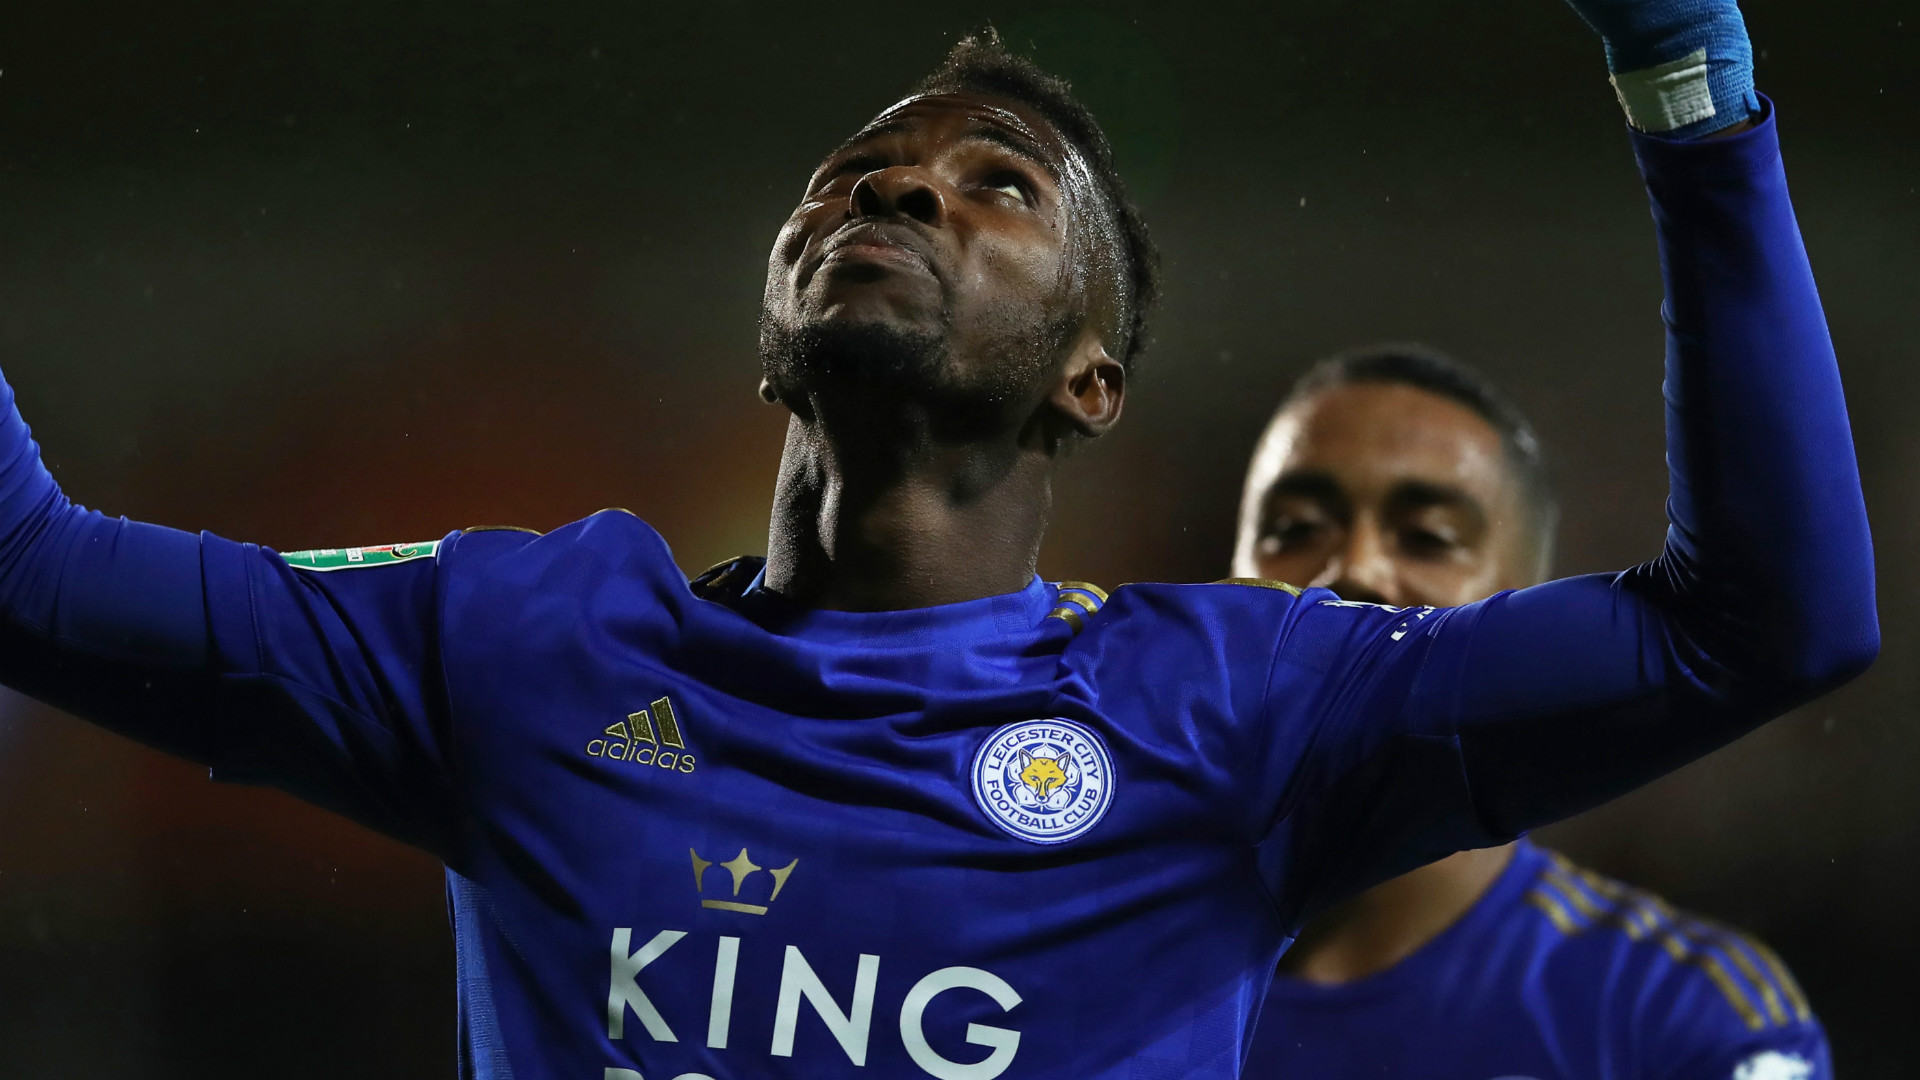 Iheanacho 'unfortunate' to be playing behind Vardy at Leicester City - Rodgers